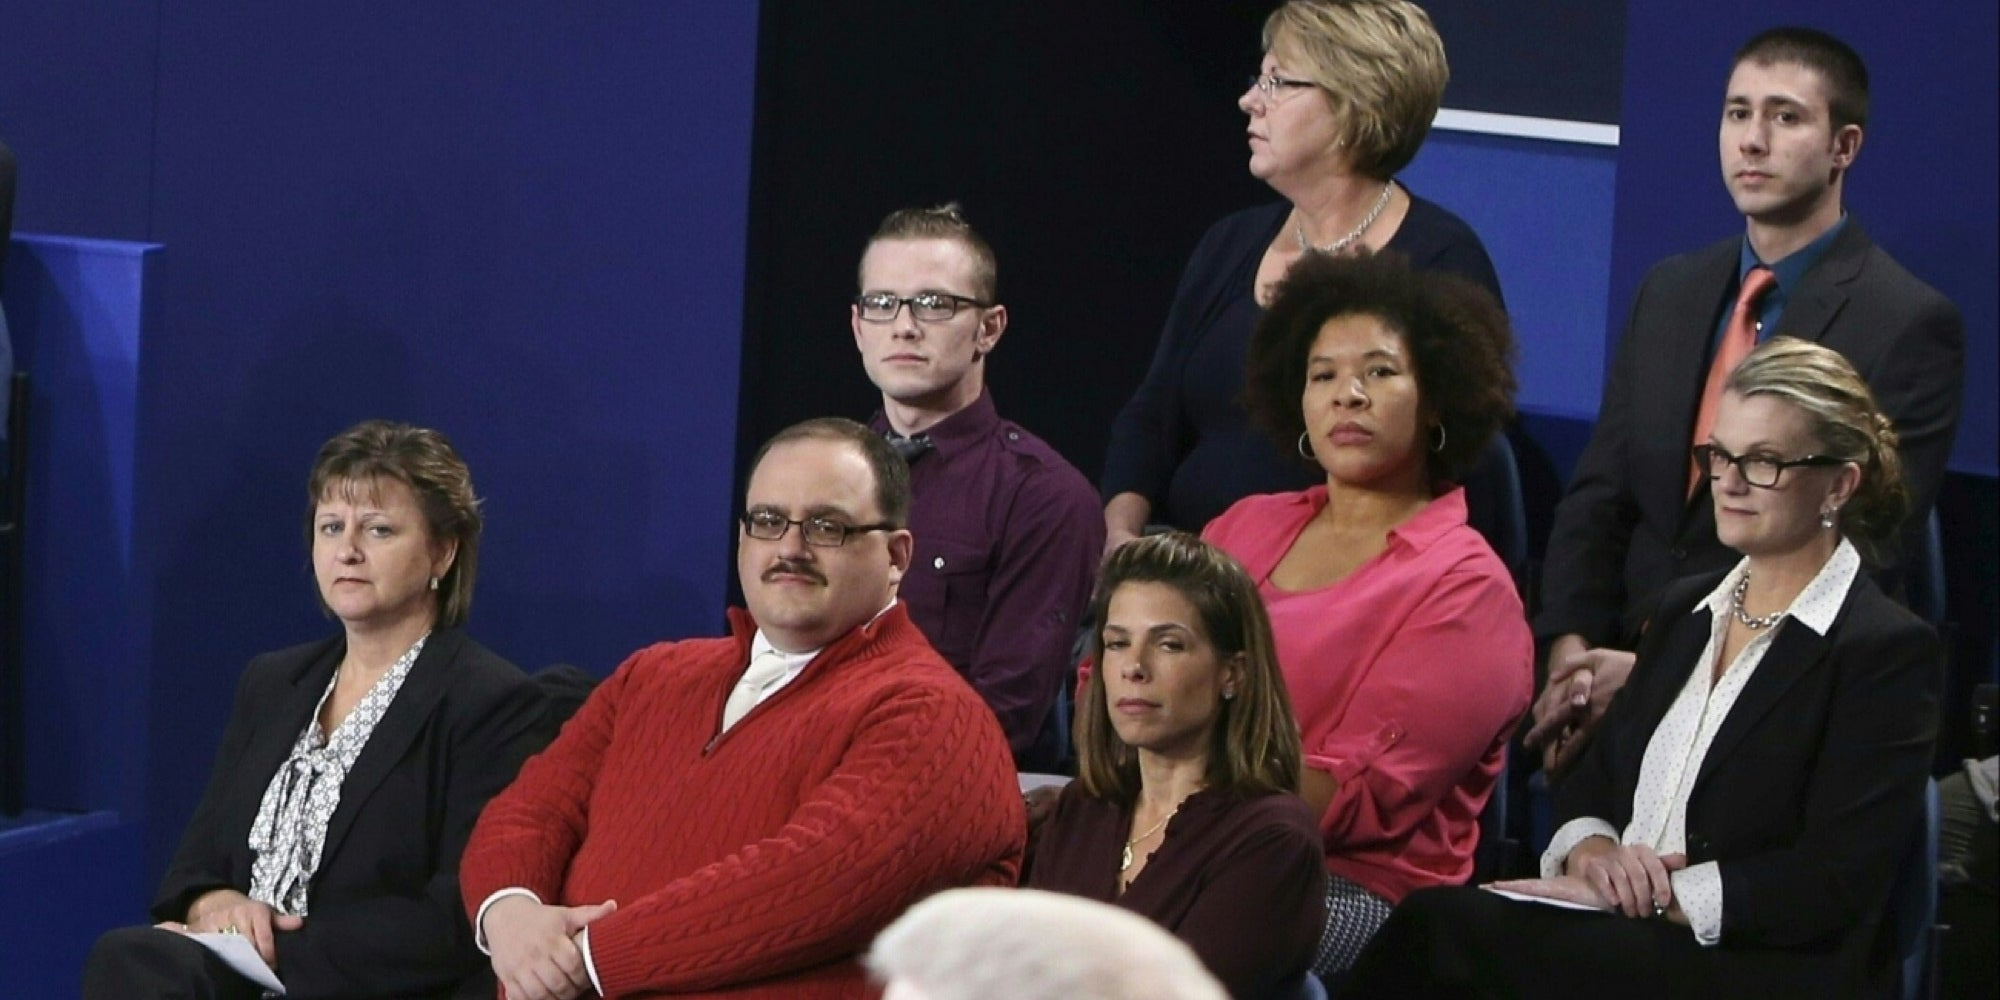 Social Media Sensation Ken Bone Stars in IZOD's New Commercial